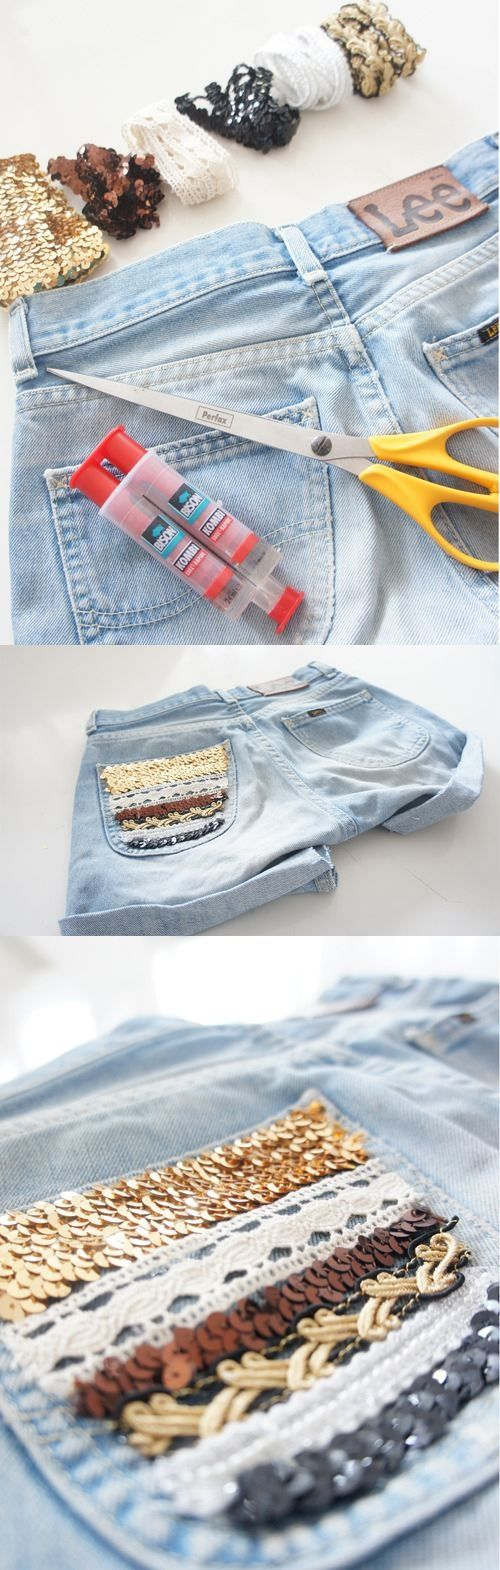 16 Best DIY Fashion Ideas Ever. These shorts are hella adorable http://www.pinterest.com/ahaishopping/